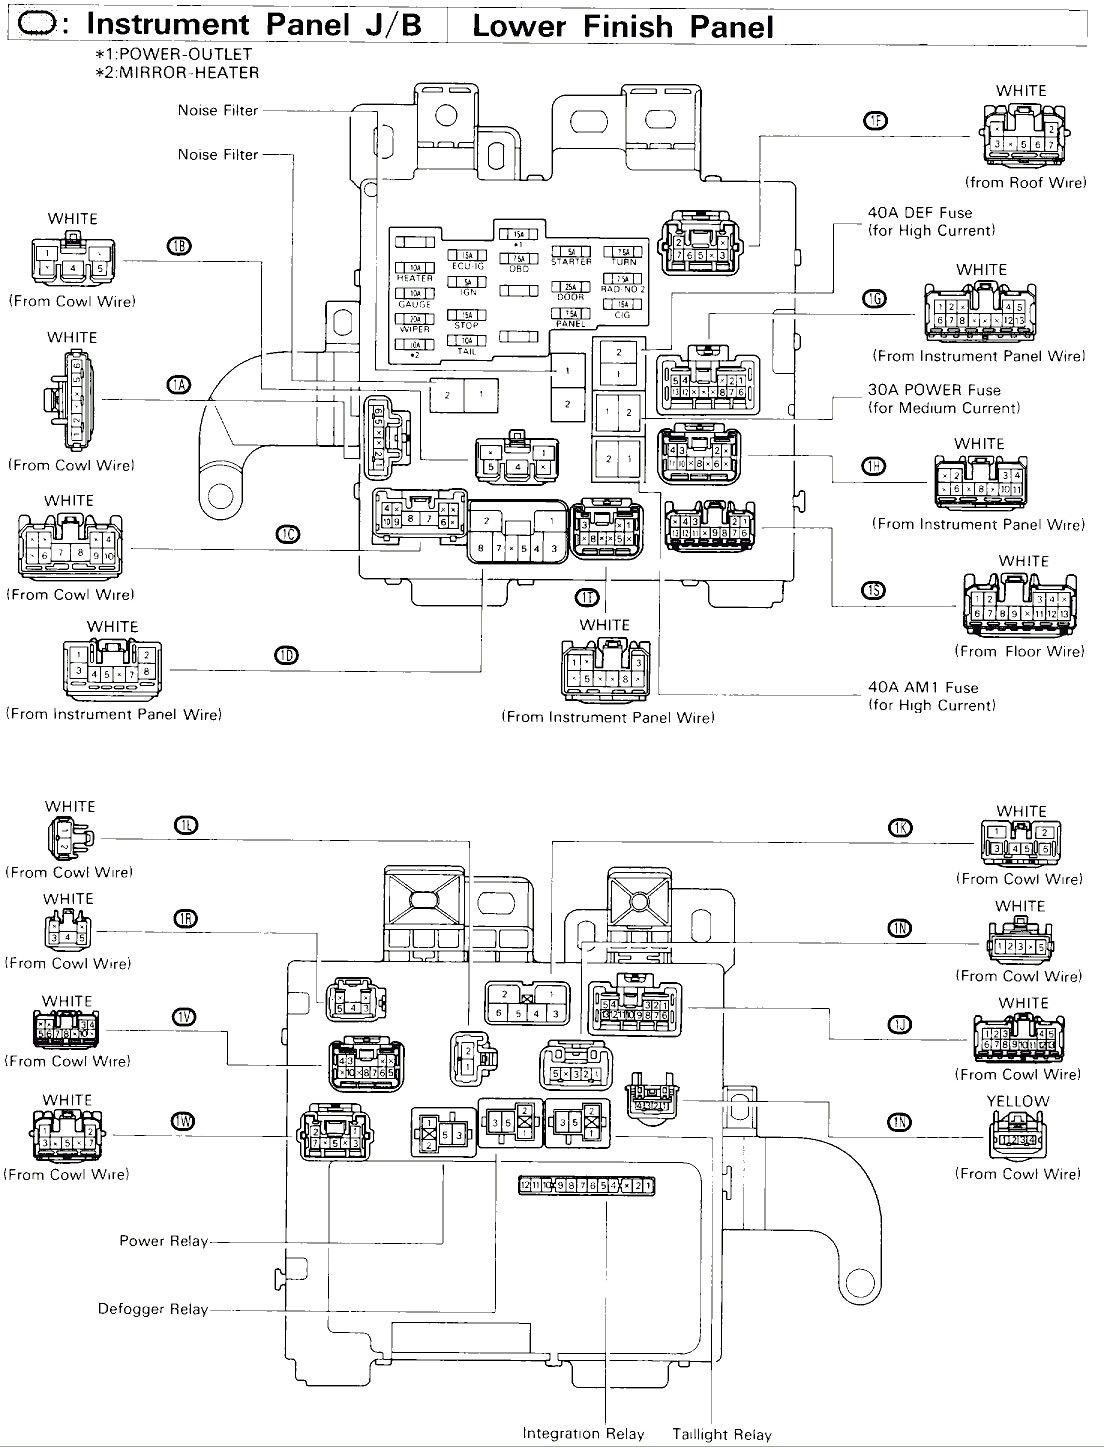 Wrg 94 Camry Le Wiring Diagram